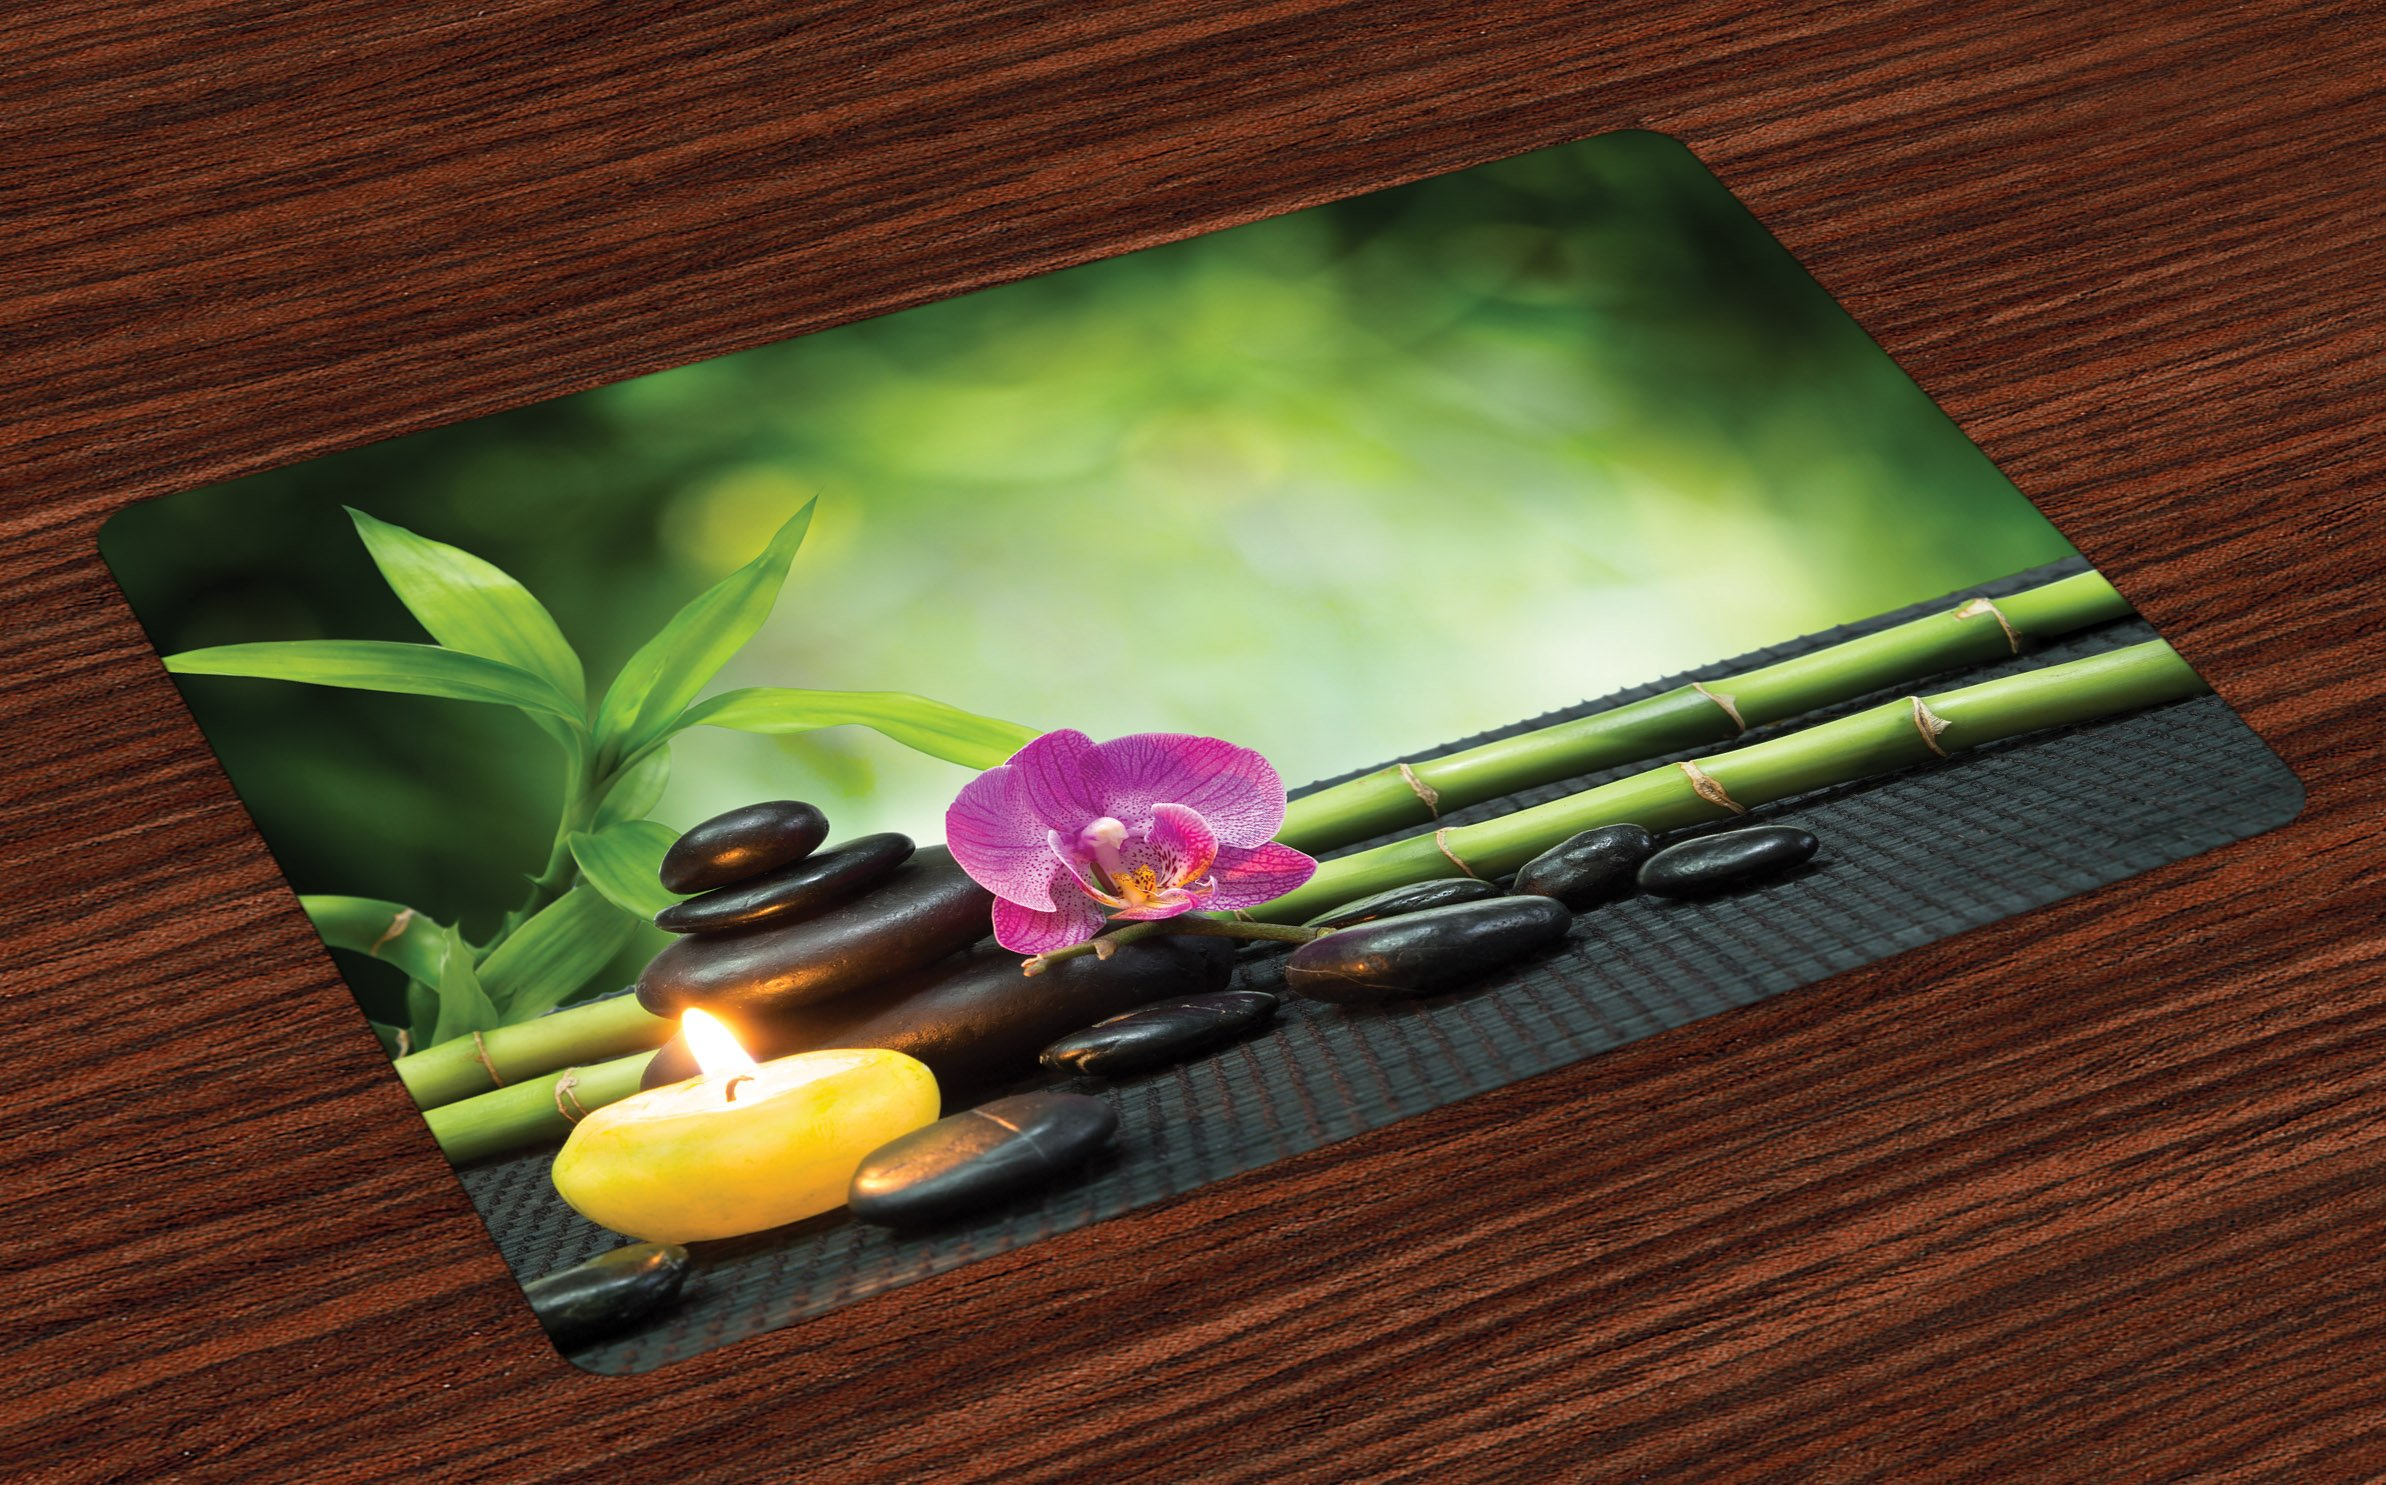 Ambesonne Spa Place Mats Set of 4, Orchid Bamboo Stems Chakra Stones Japanese Alternative with Feng Shui Elements, Washable Fabric Placemats for Dining Room Kitchen Table Decor, Apple Green Fuchsia